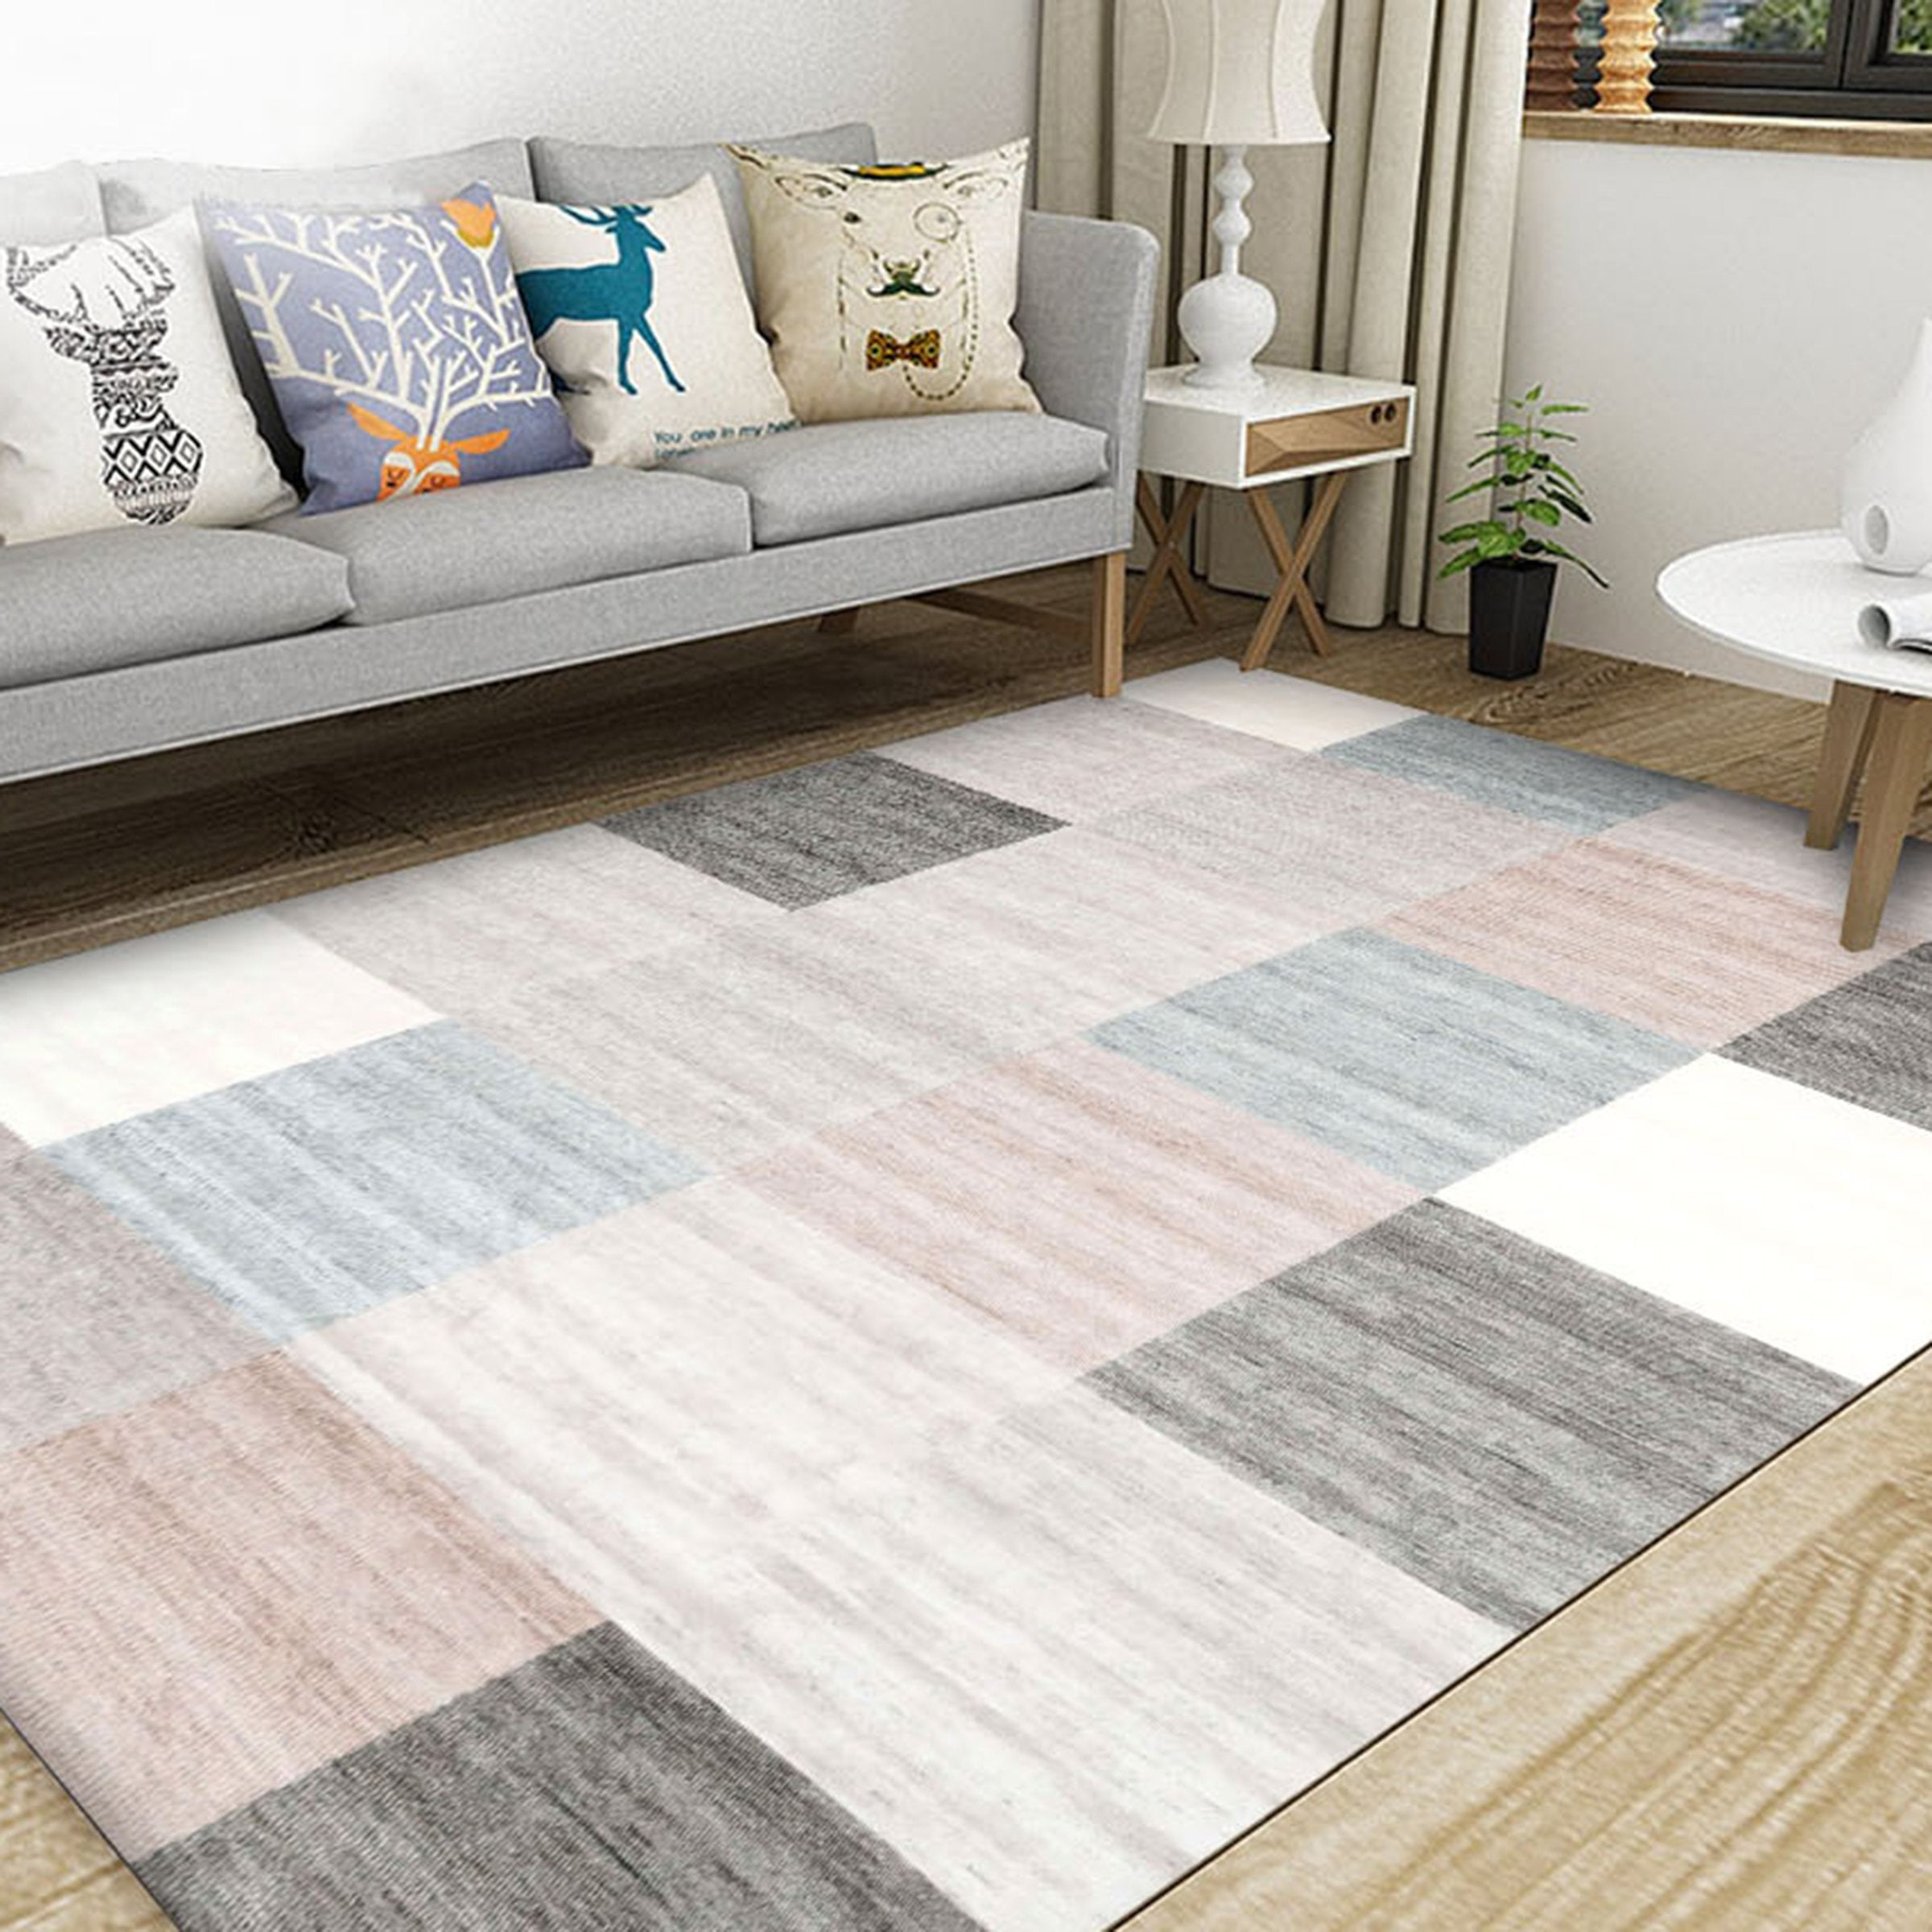 3D Colored Geometric Pattern WG557 Non Slip Rug Mat